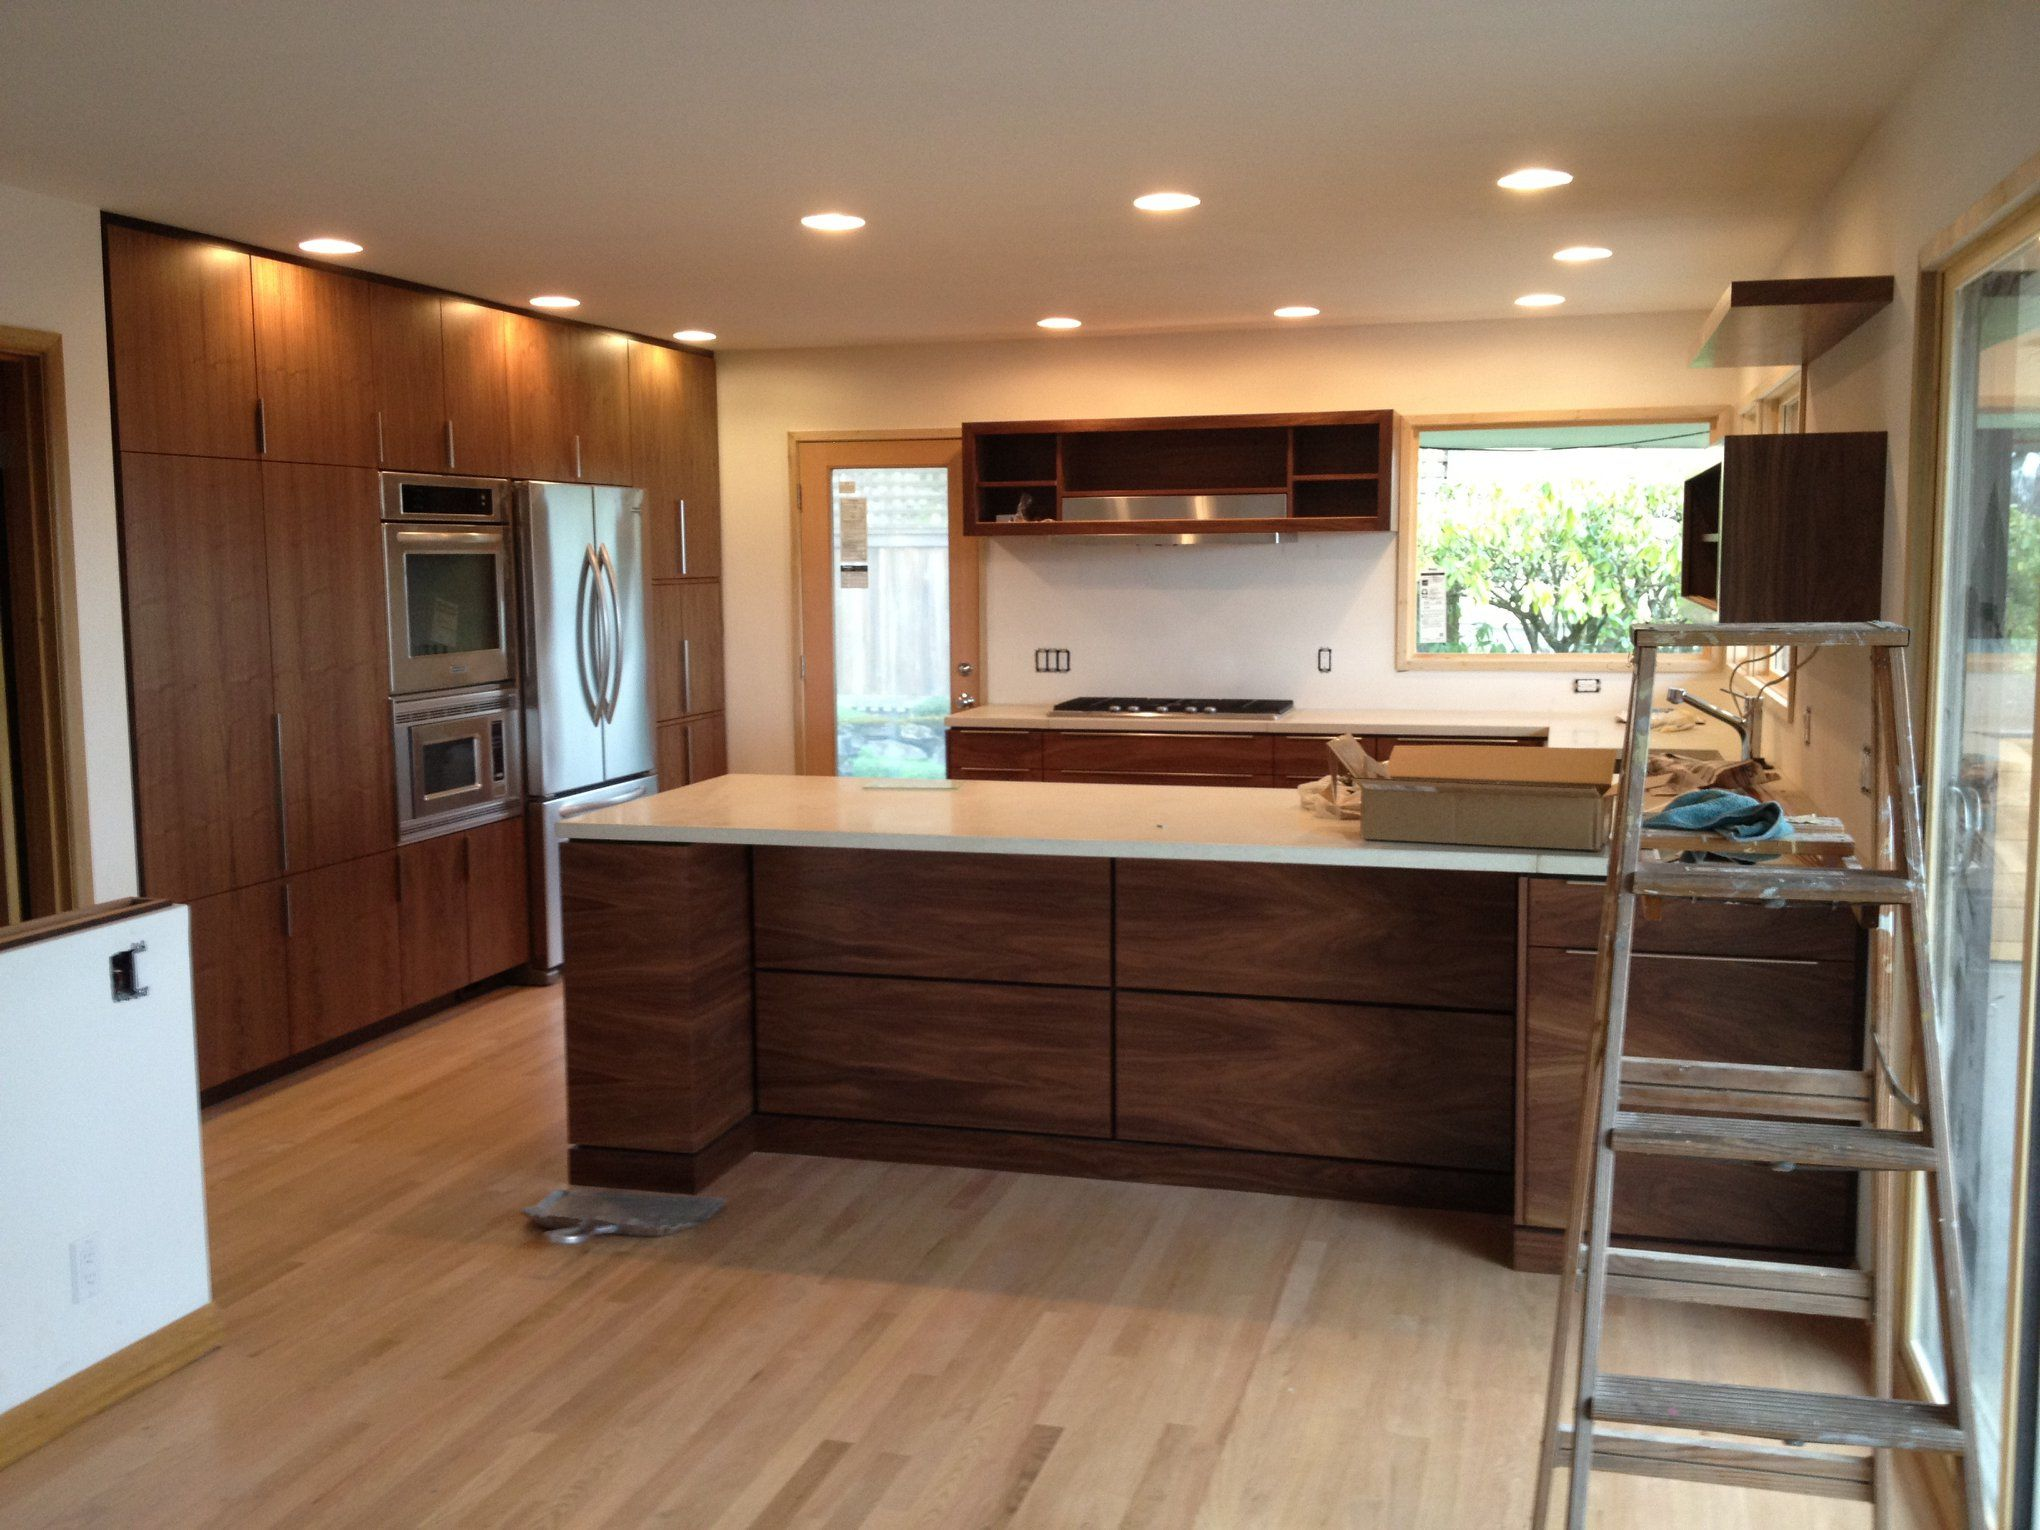 Gec Cabinet Depot Walnut Cabinets In 2020 Walnut Kitchen Cabinets Mid Century Modern Walnut Kitchen Walnut Kitchen